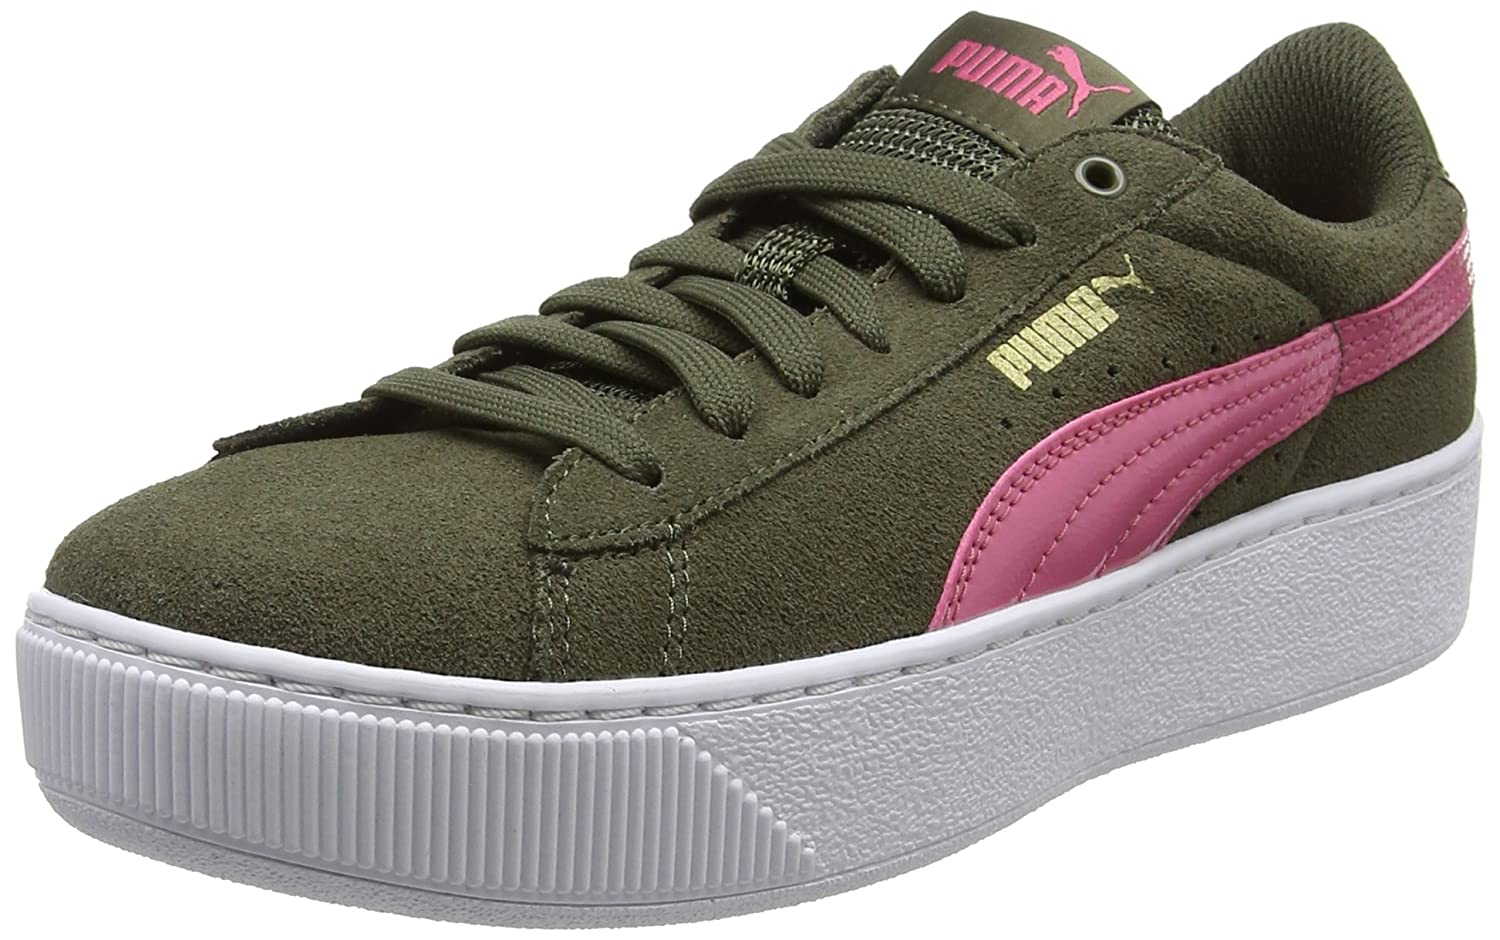 Puma Vikky Platform, Baskets Basses Femme Vert (Olive (Olive Vikky Puma Night-rapture Rose) 6a87d55 - reprogrammed.space